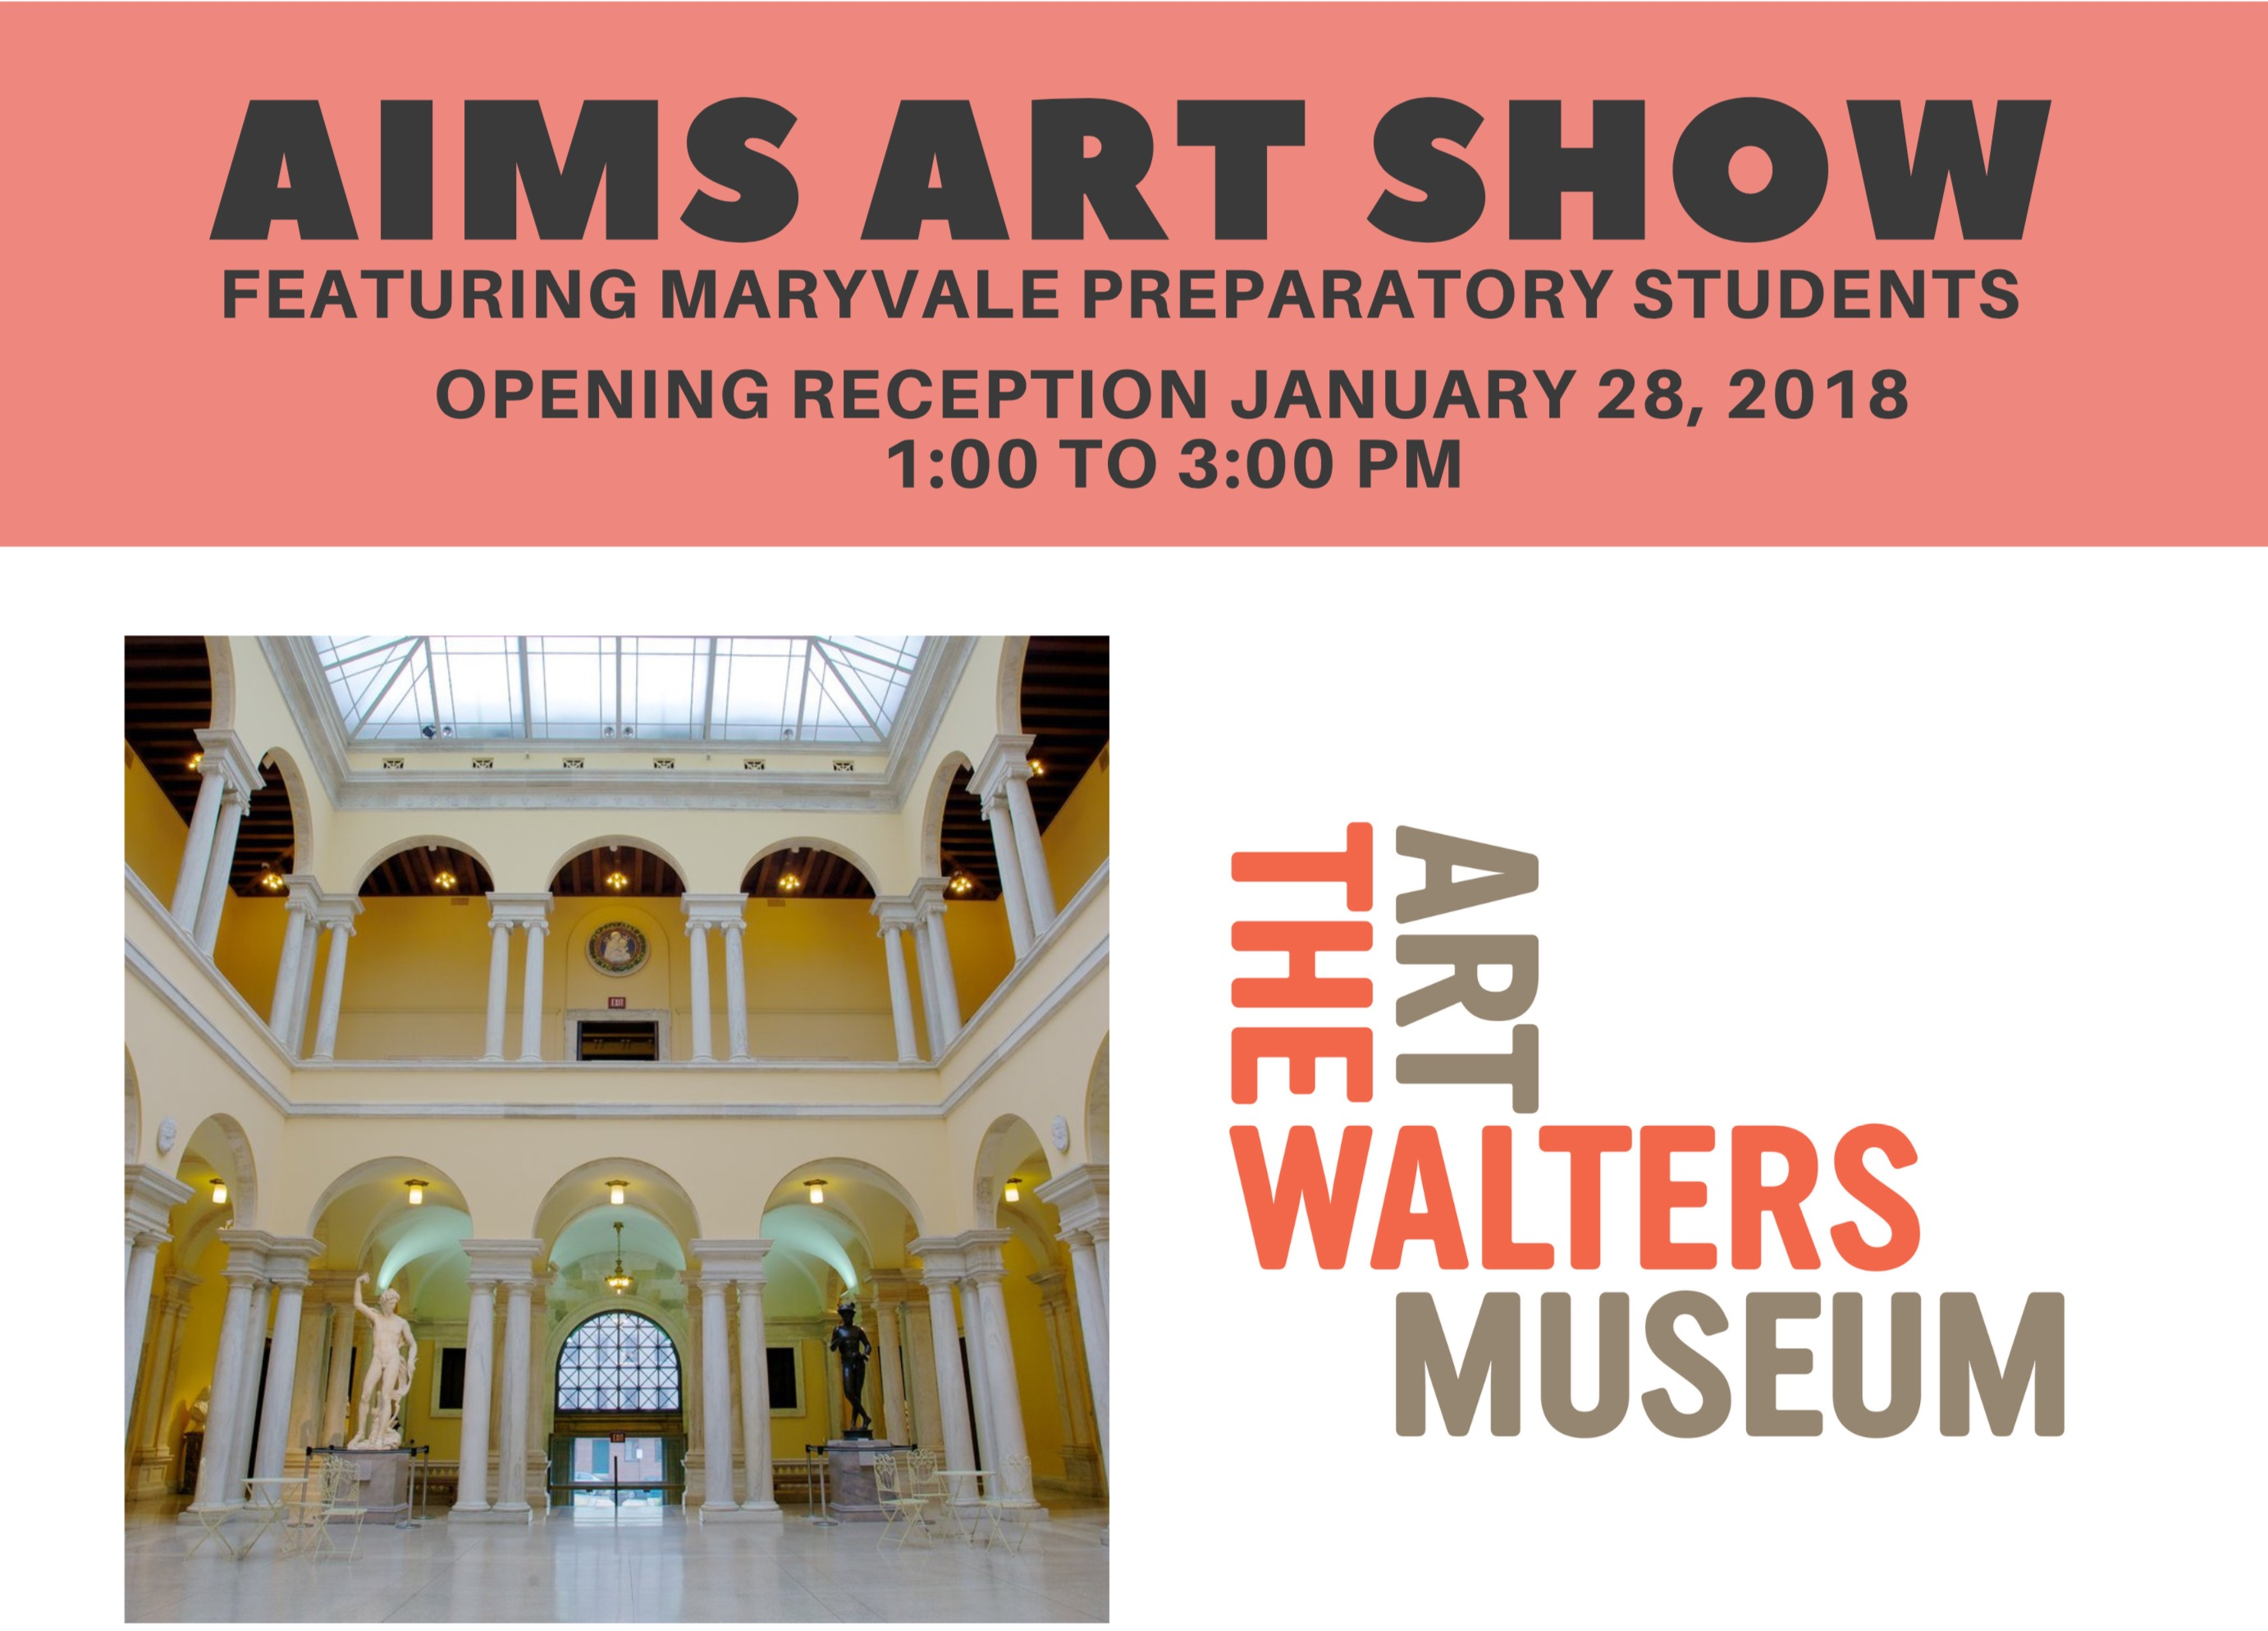 Maryvale Visual Arts students' work showcased at AIMS Art Show